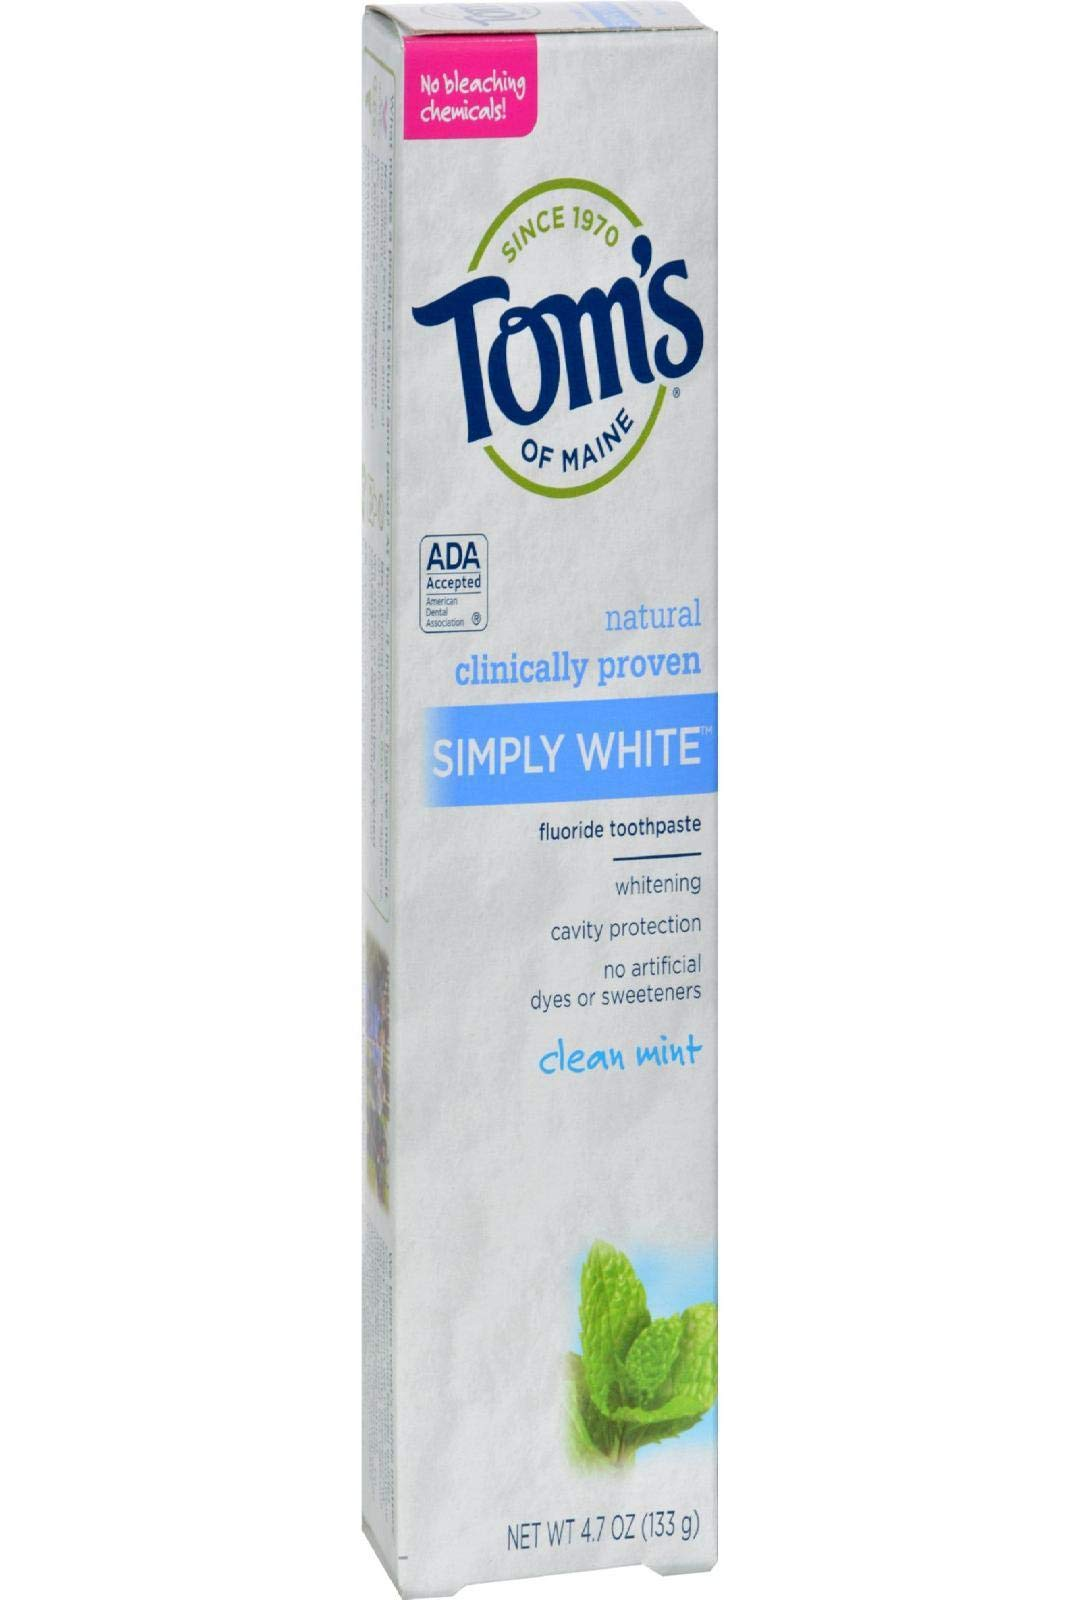 Tom's of Maine Simply White Toothpaste, Fluoride, Clean Mint, 4.7 oz.